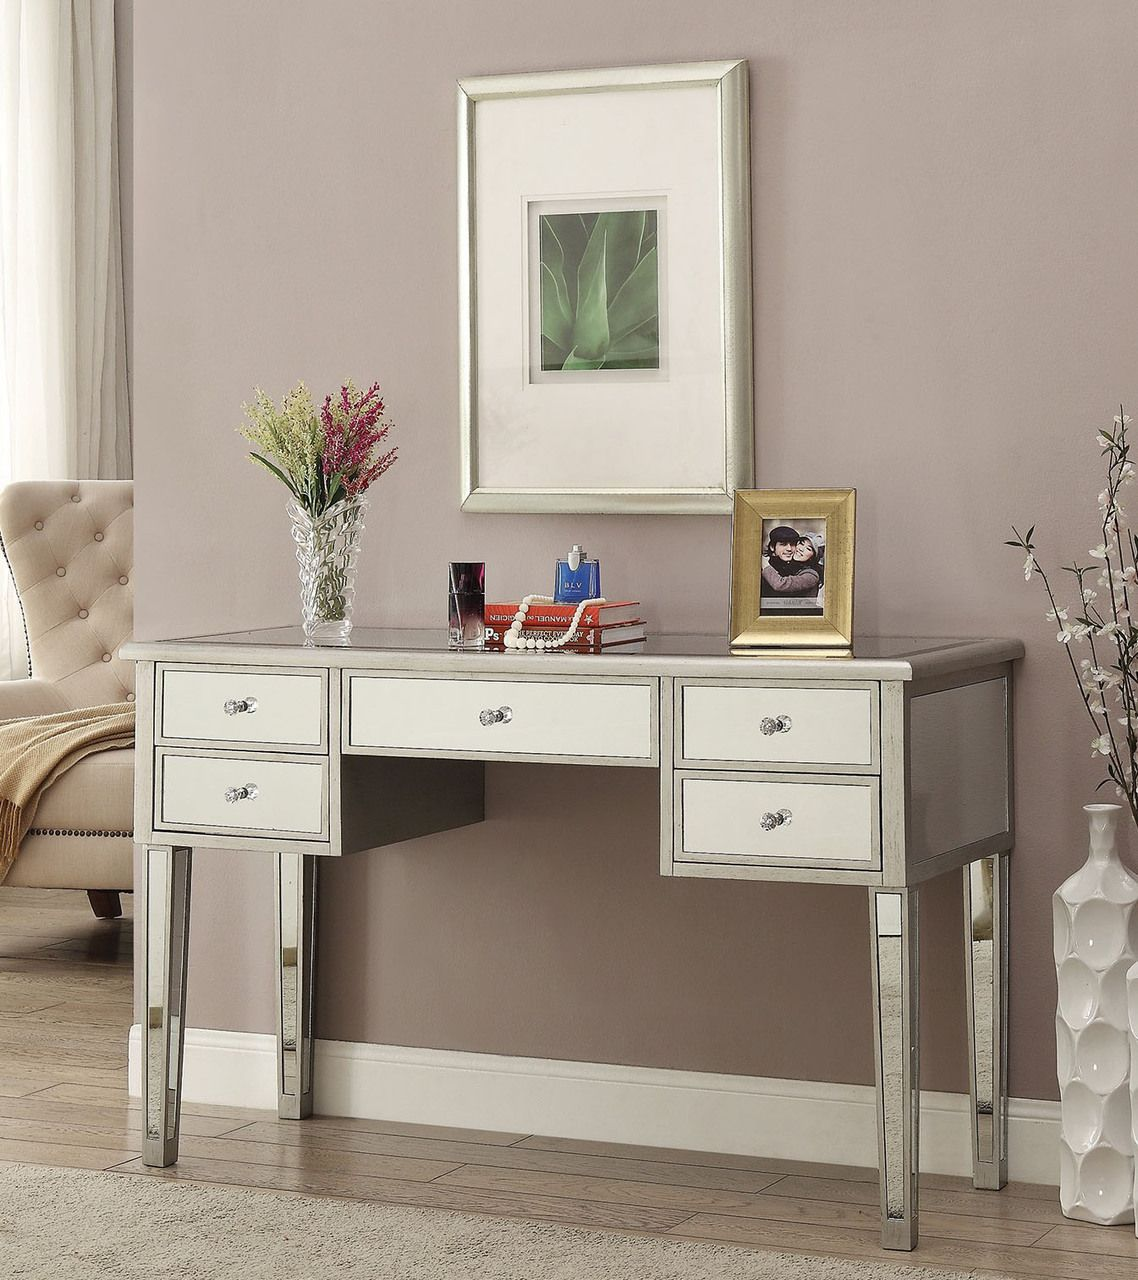 EFurnitureHouse.com   Zarina Antique Silver Mirrored Vanity Table, $649.00  (http